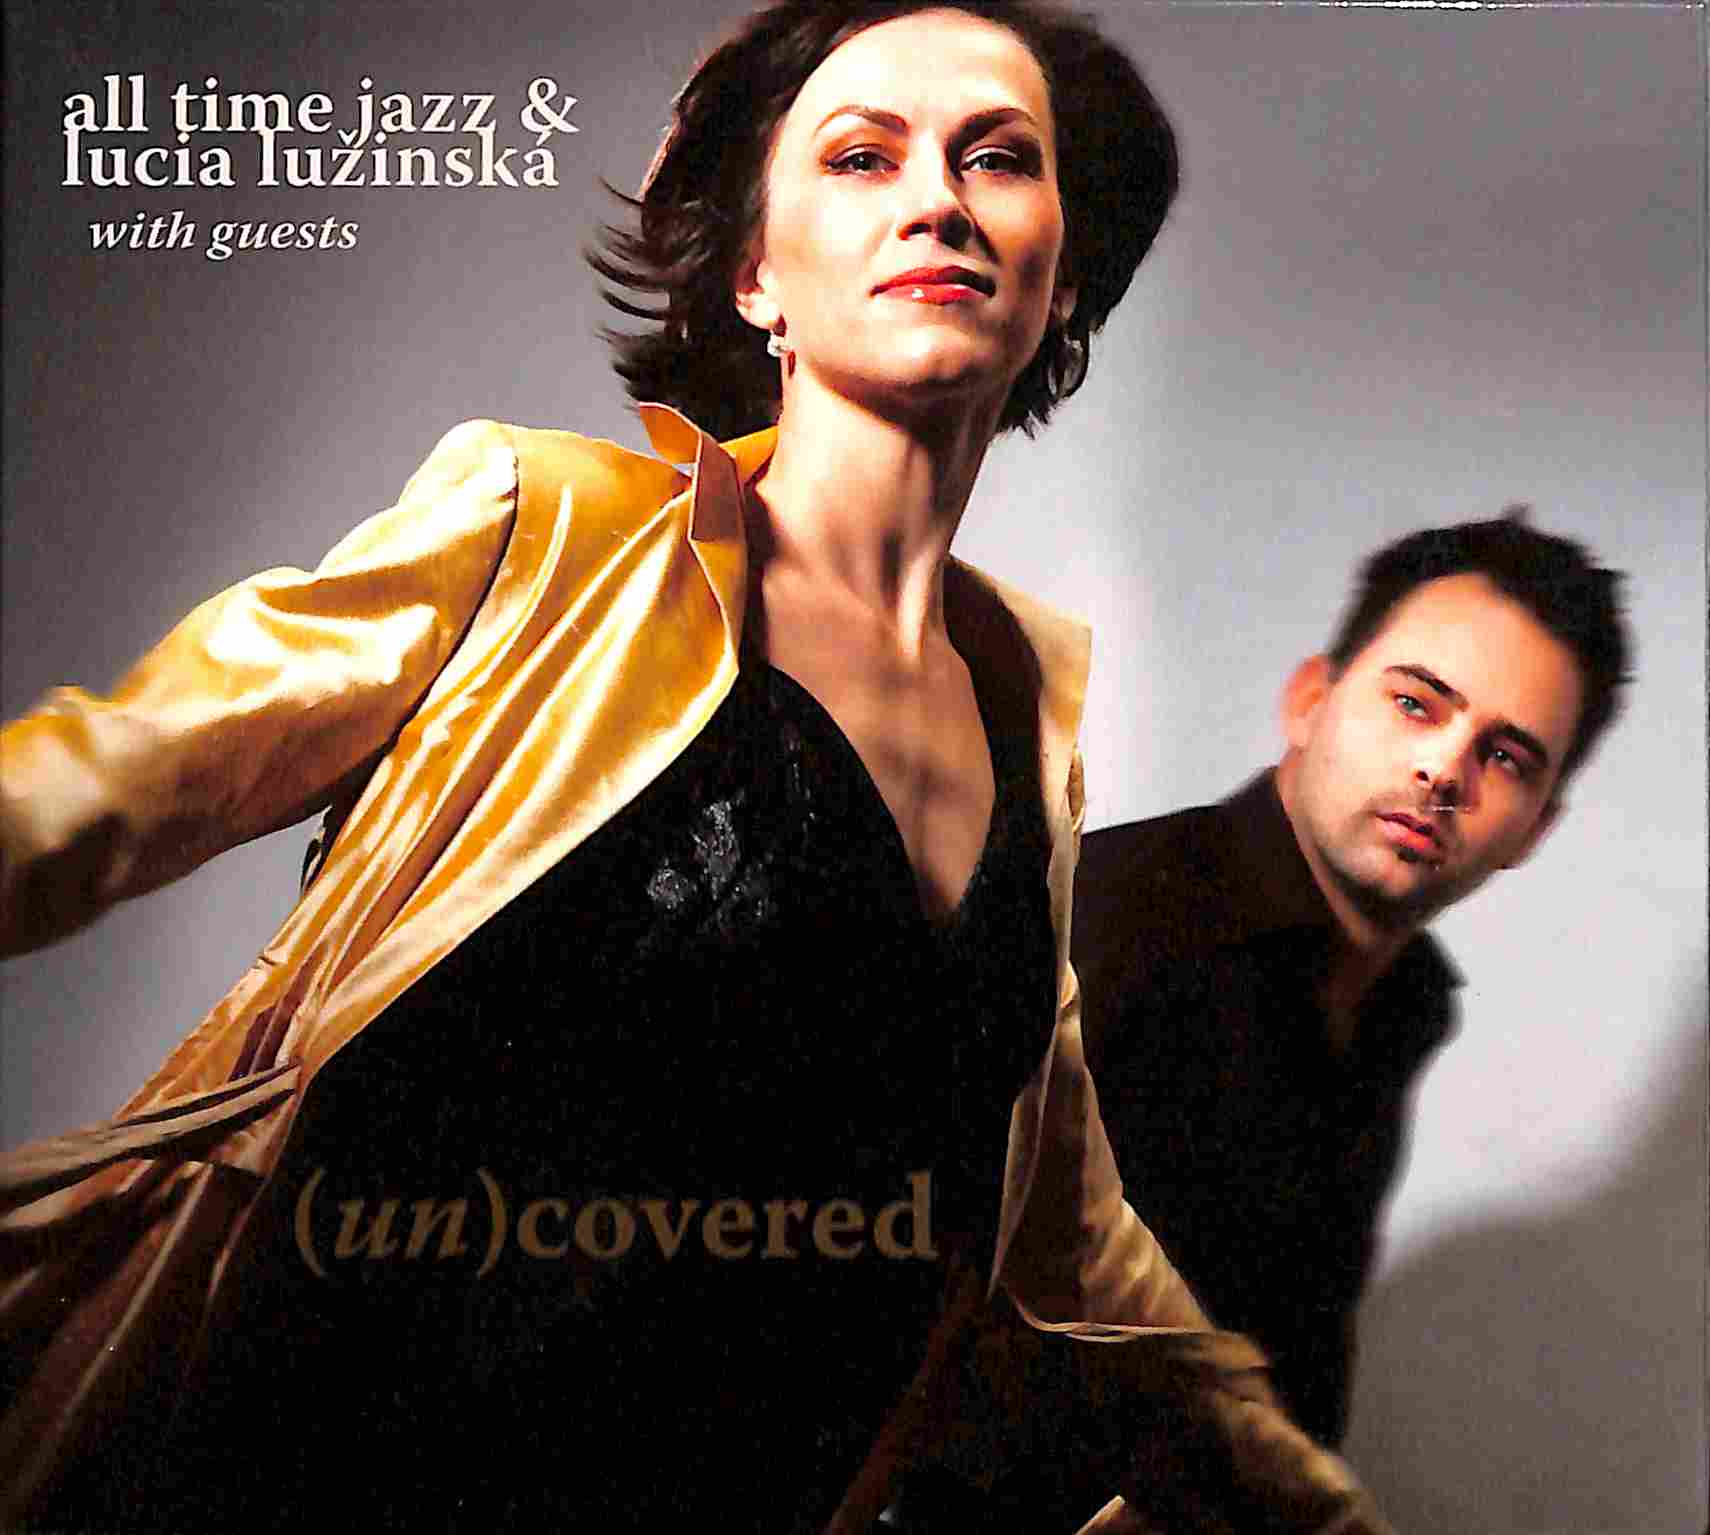 All time jazz & Lucia Lužinský - (un)covered